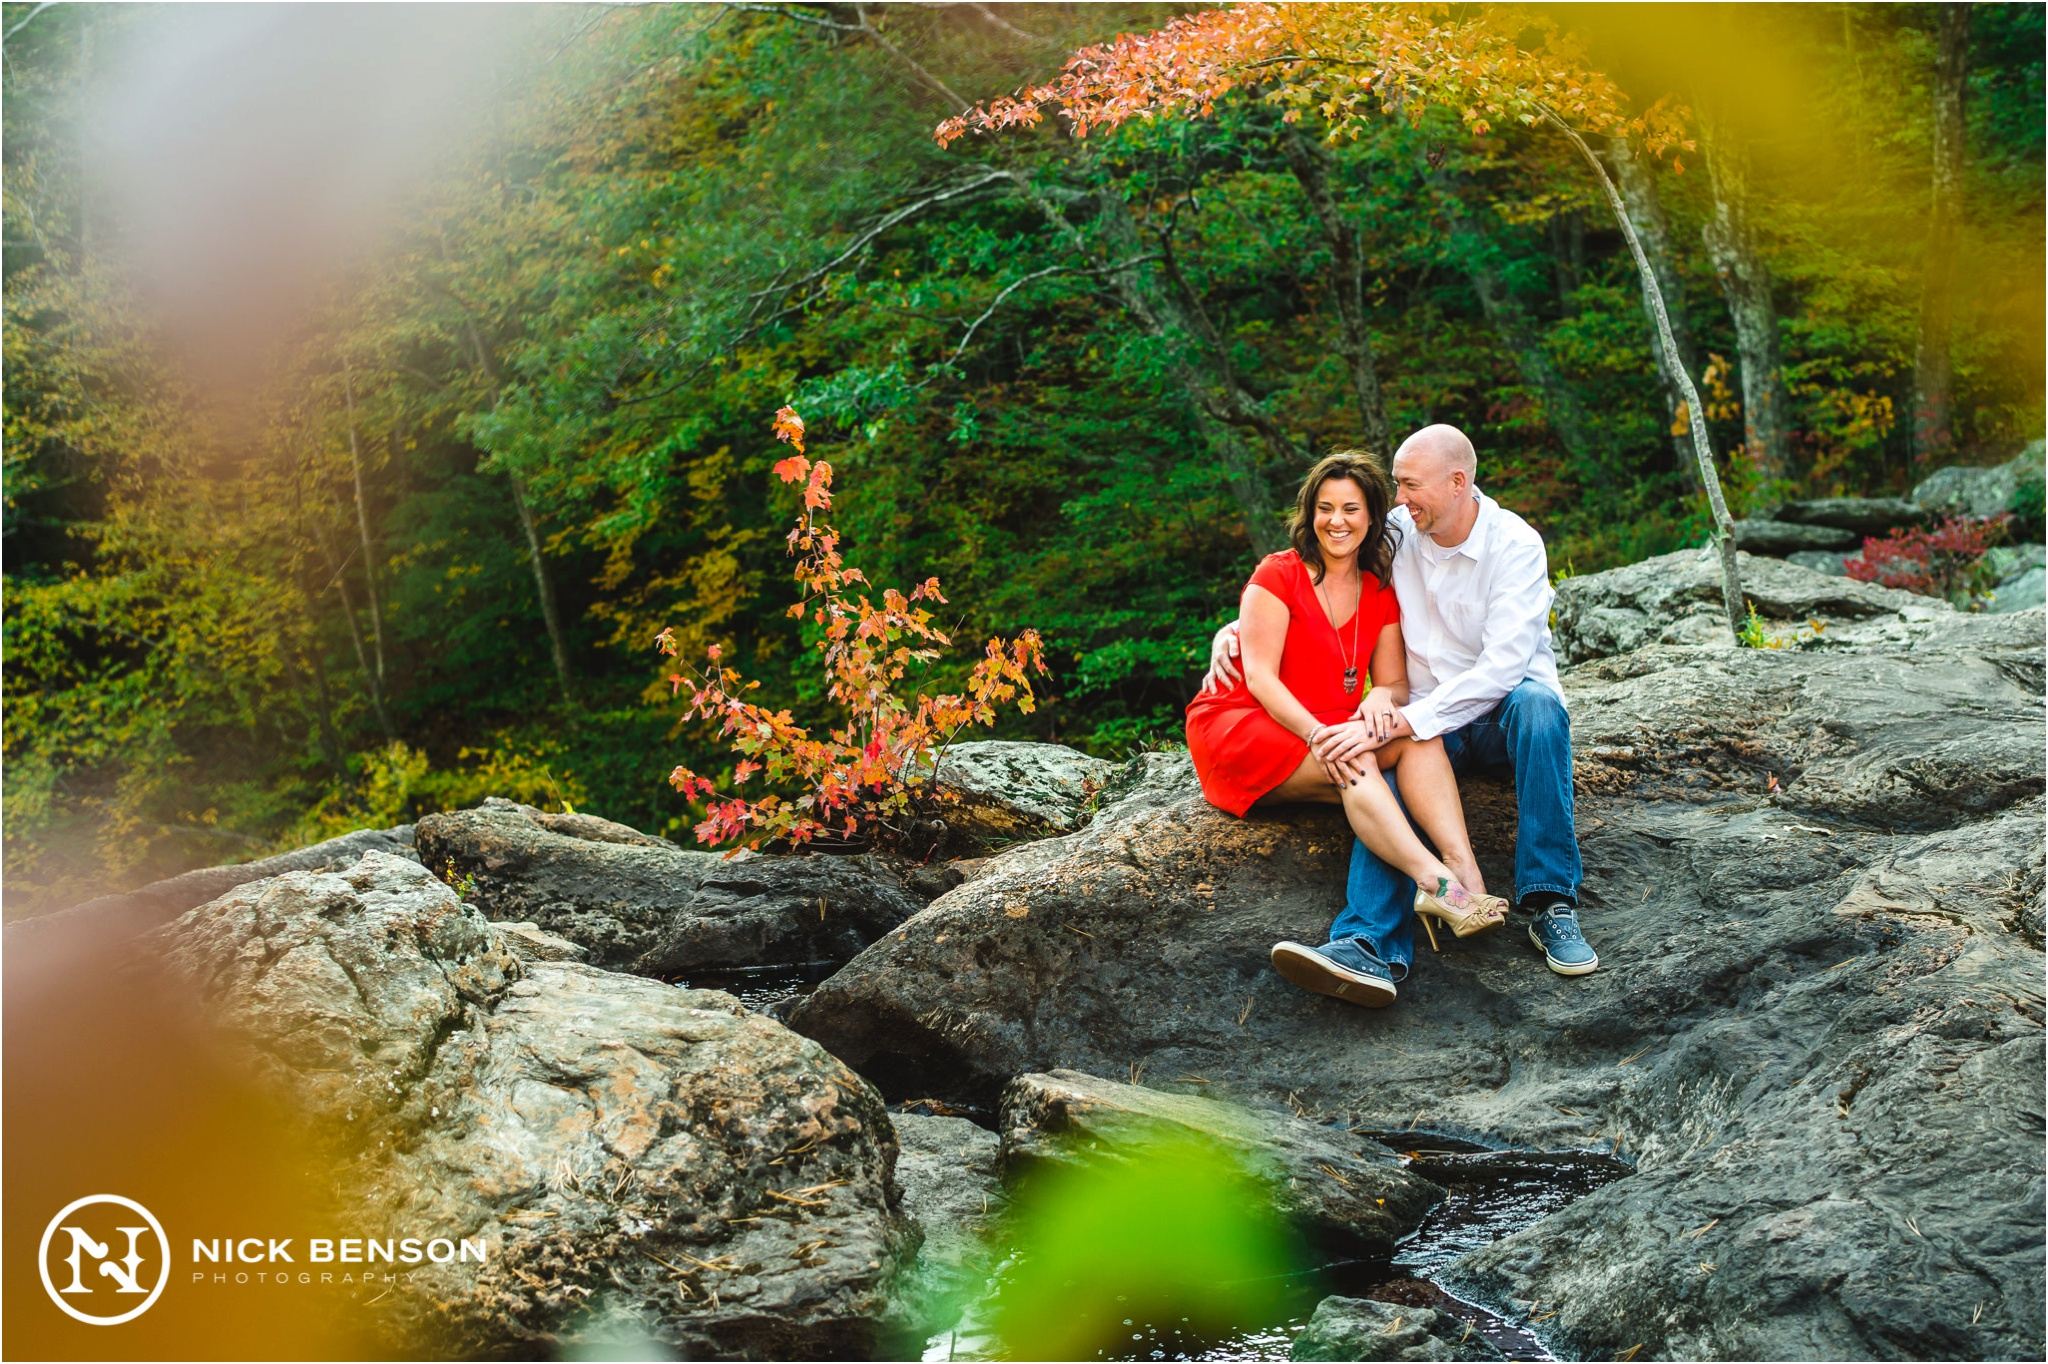 Devils Hopyard Engagement Session, Nick Benson Photography